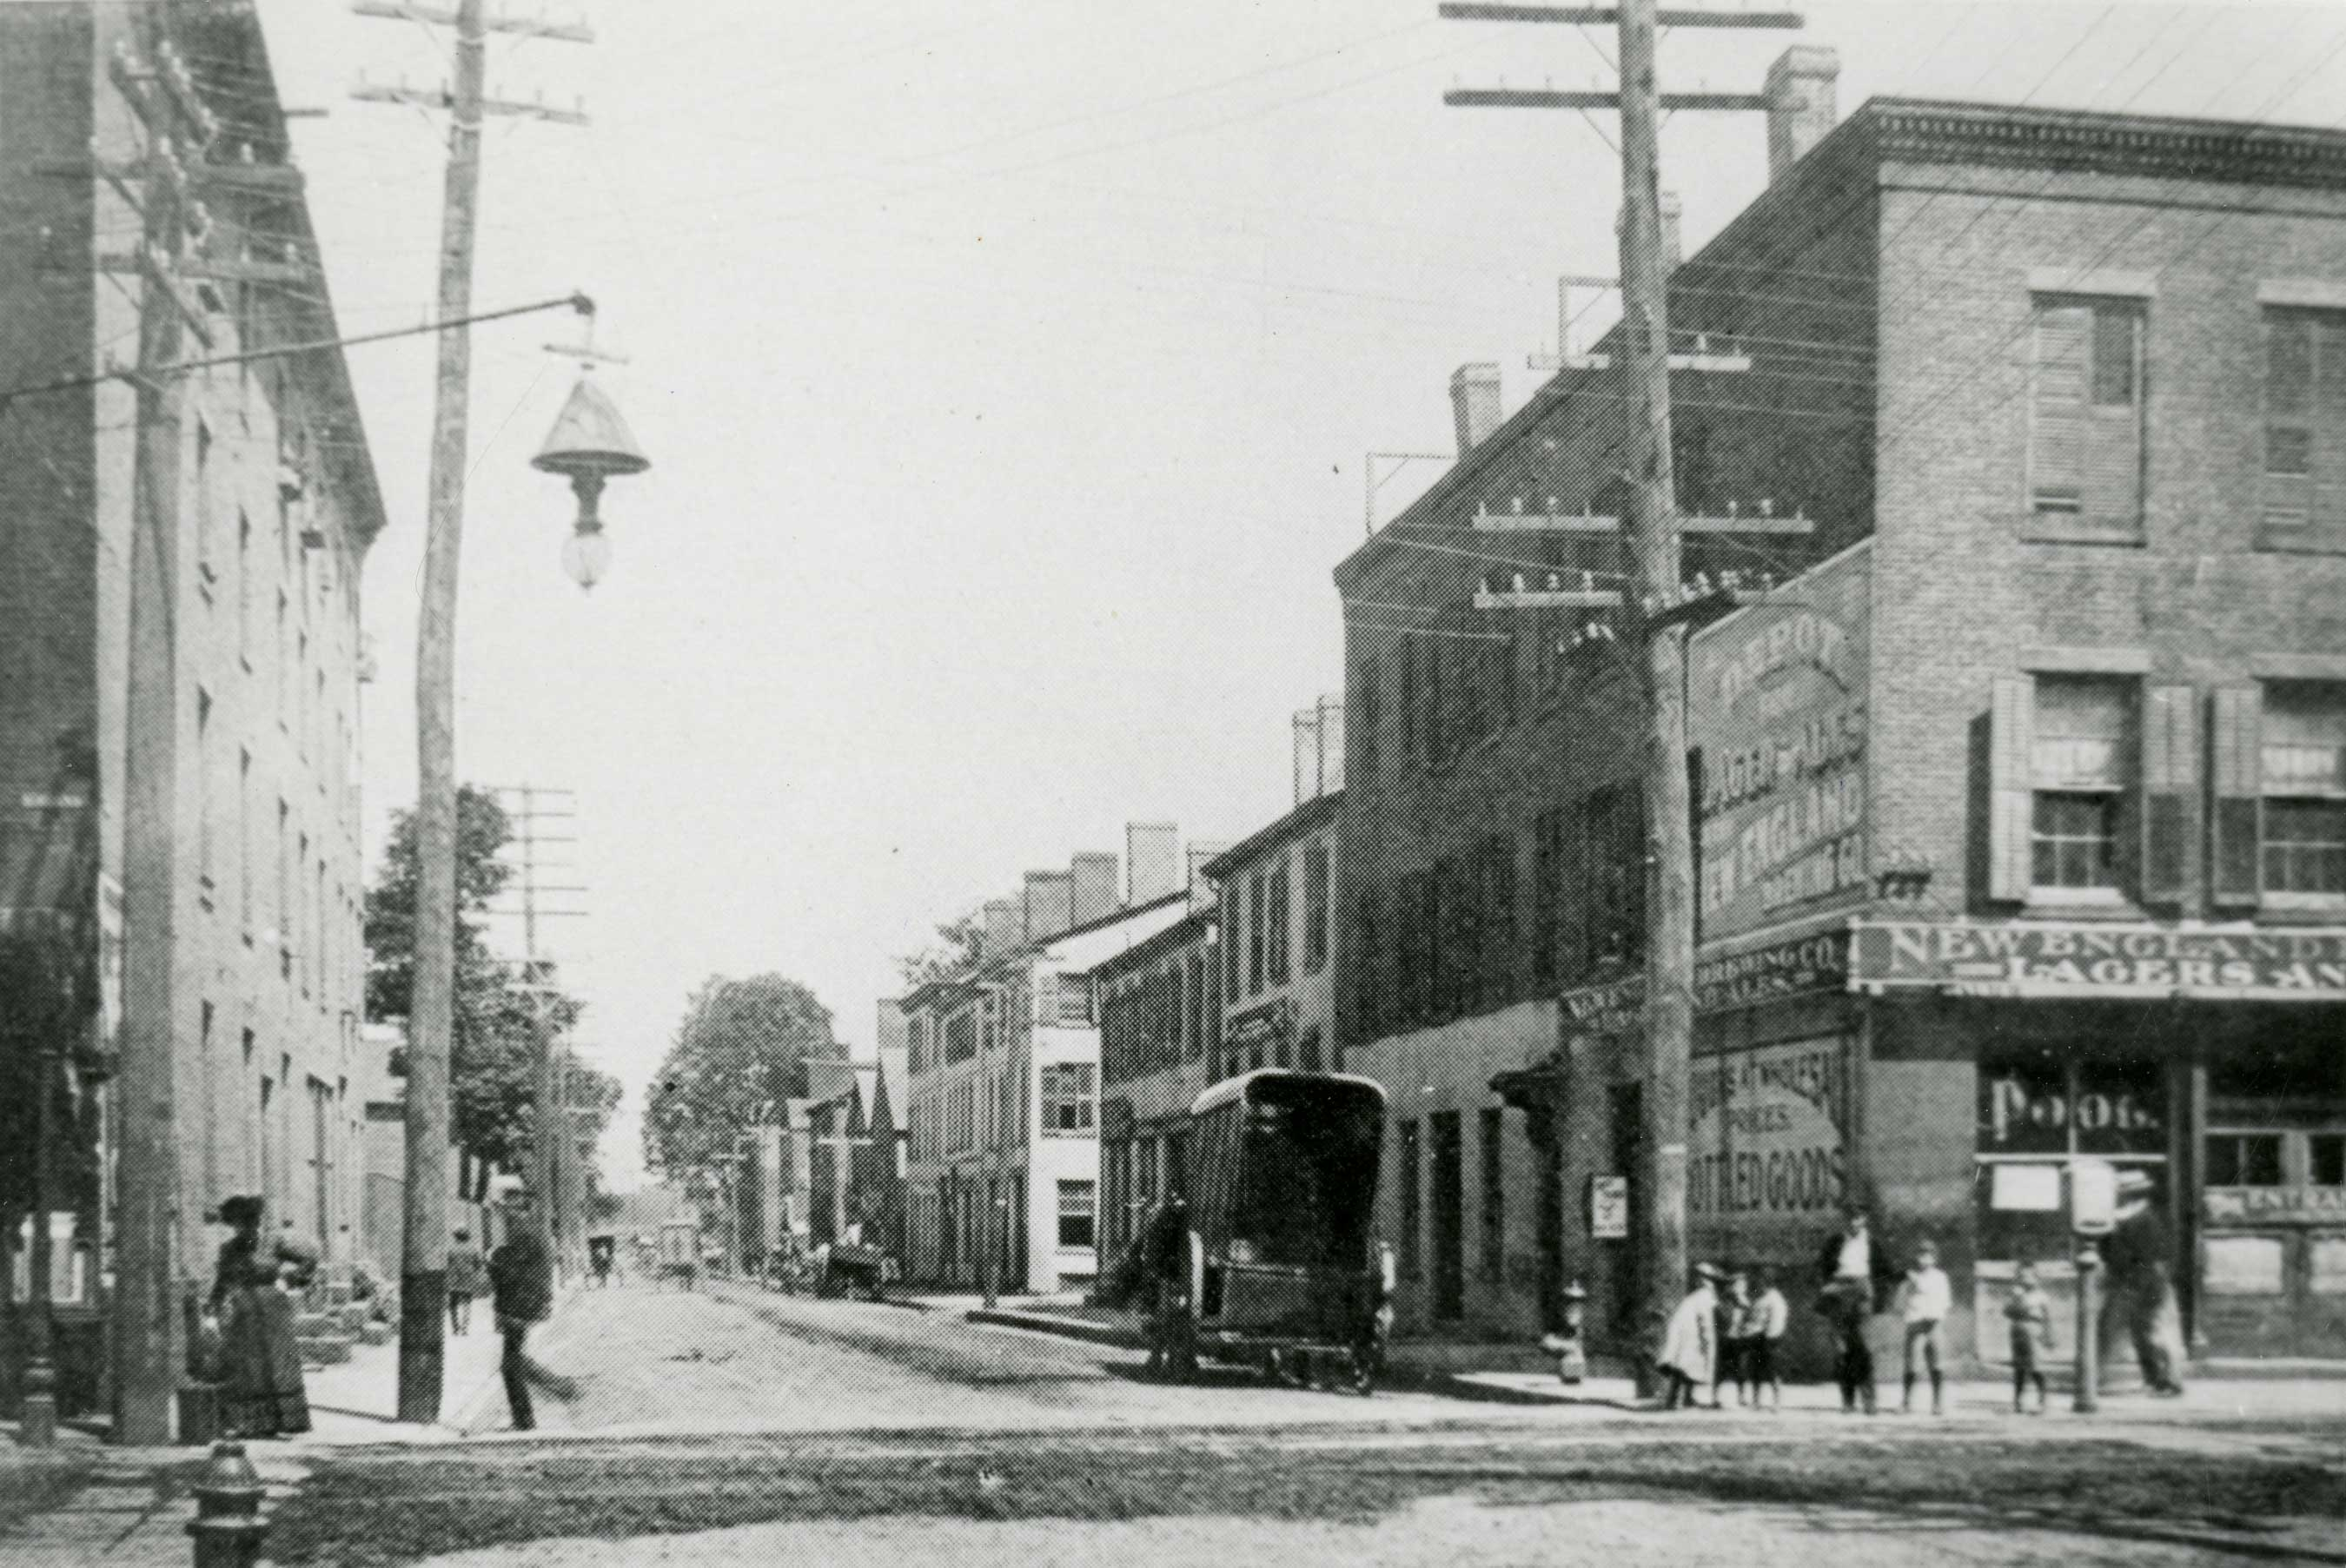 Street scene in Hartford, Connecticut, early 1900s